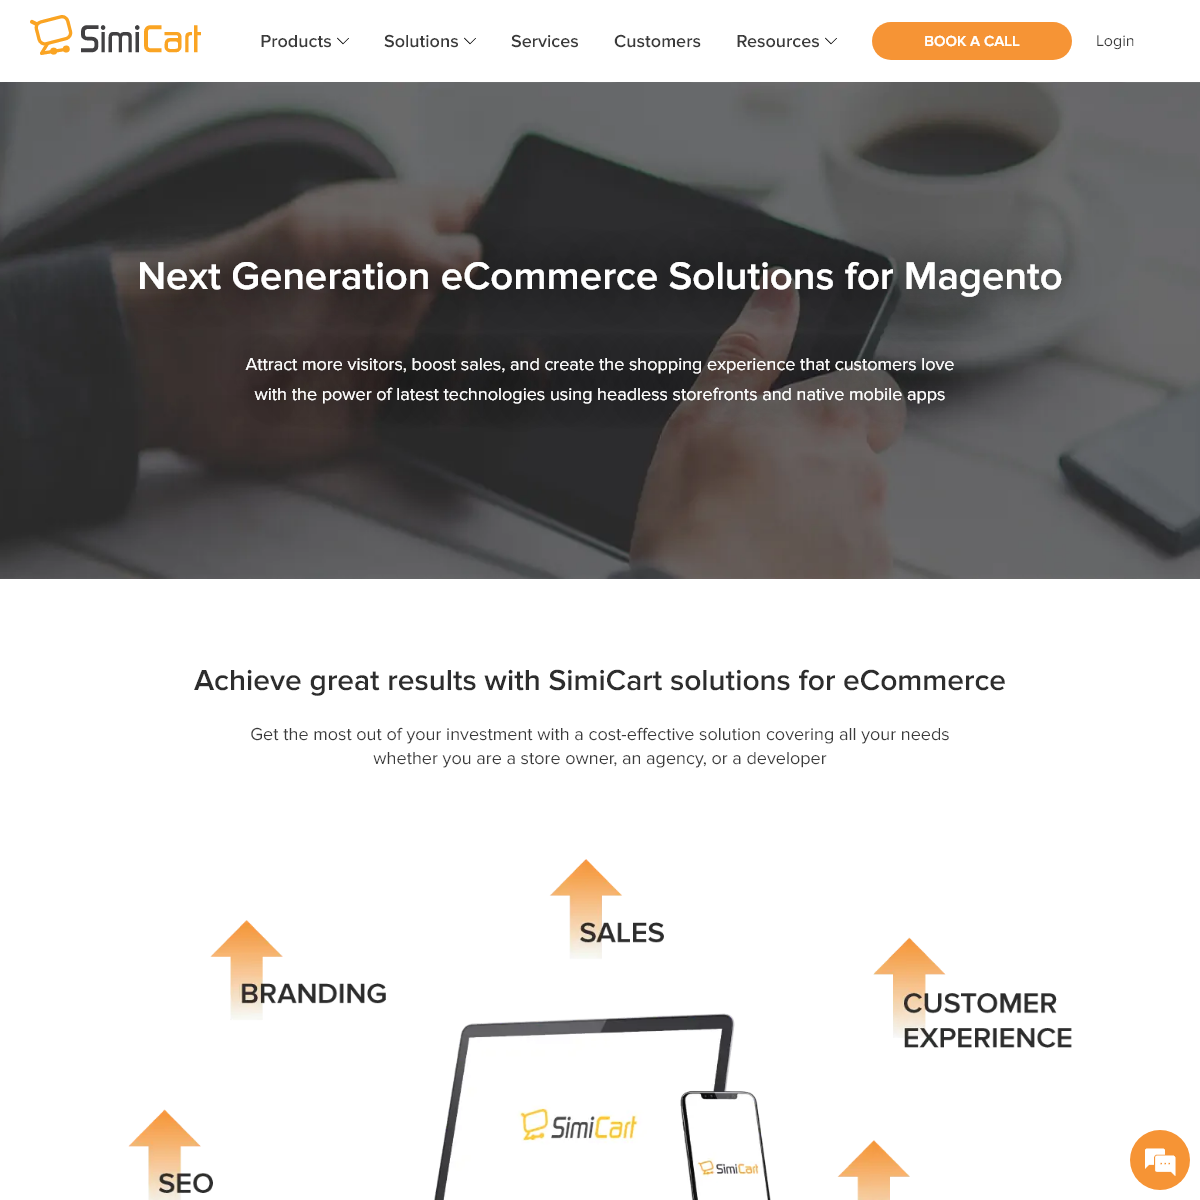 Next Generation eCommerce Solutions for Magento - SimiCart